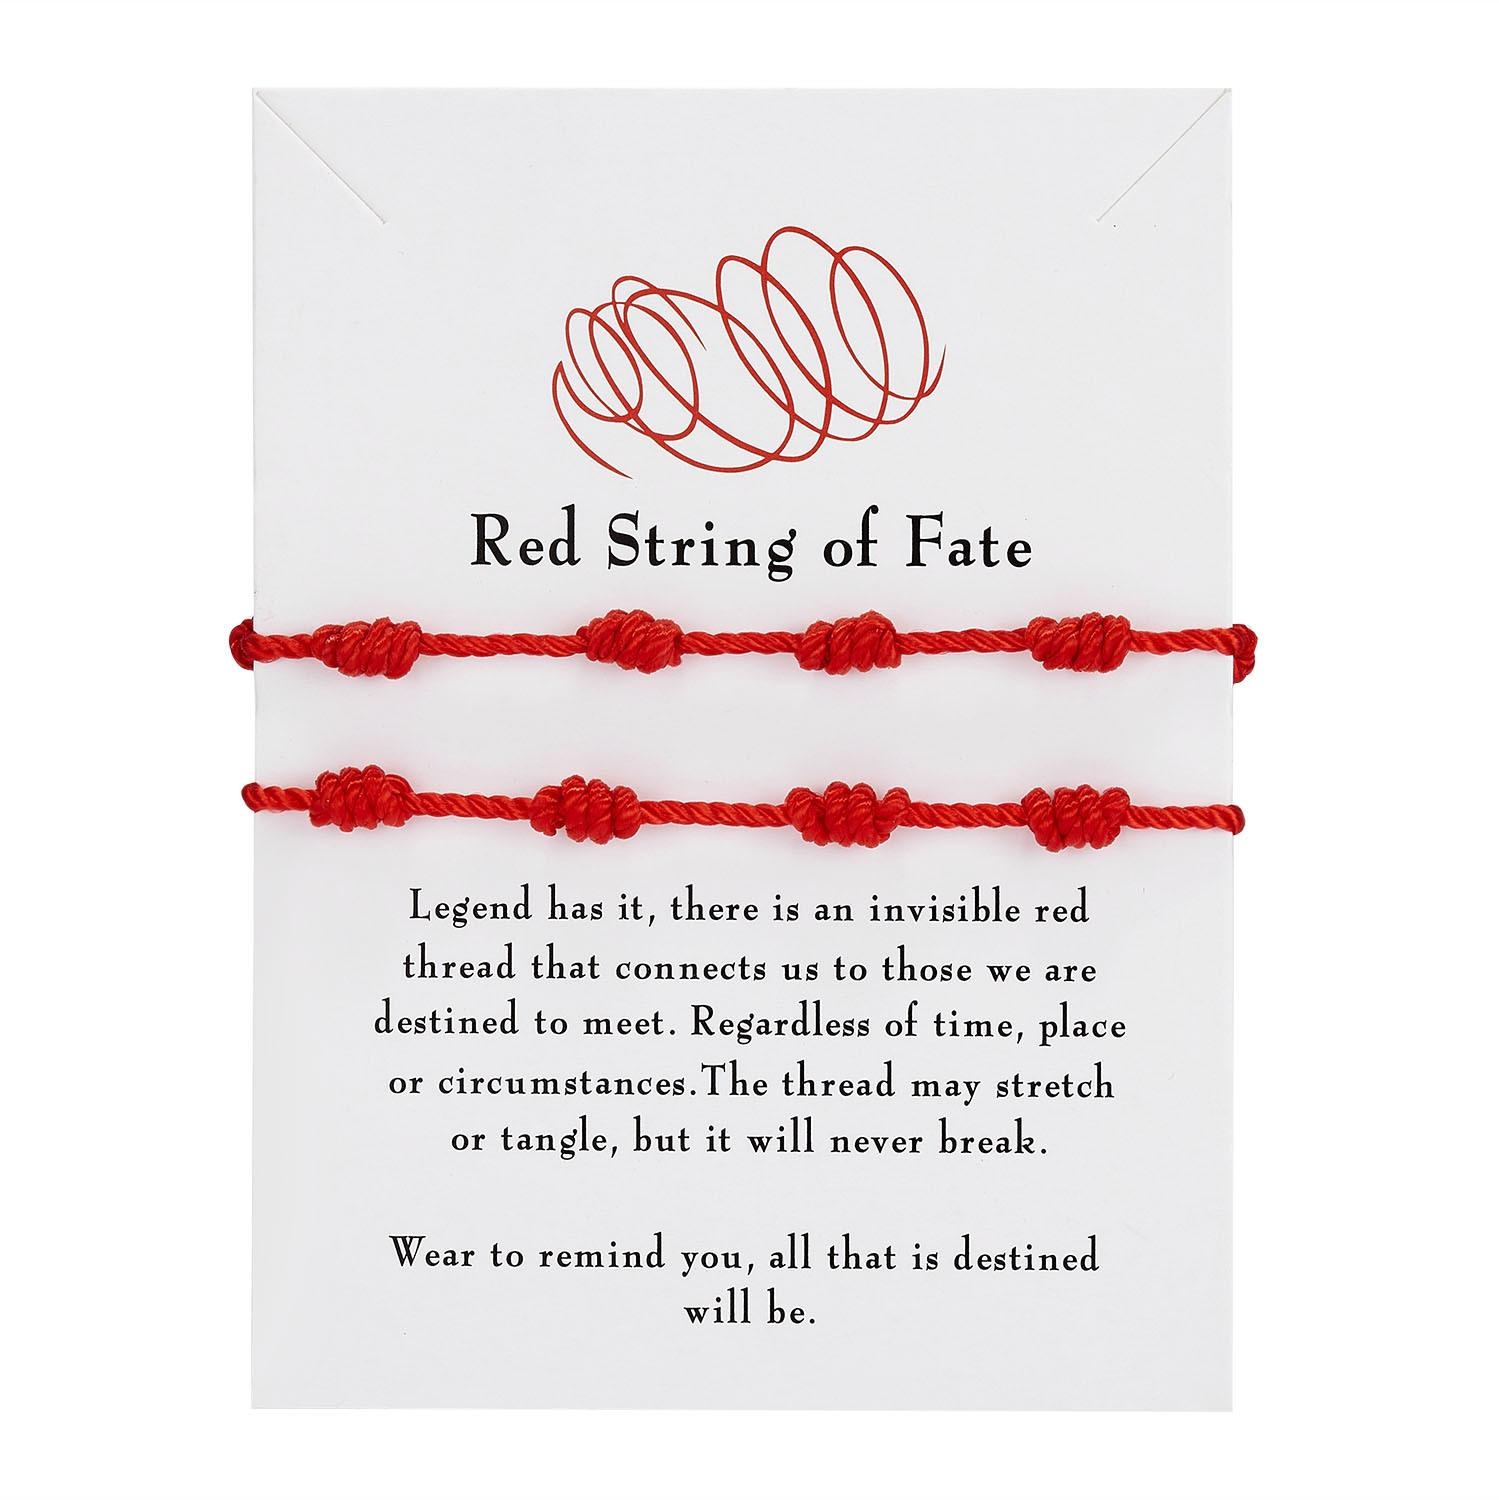 2pcs/set Fashion Handmade 7 Knots Red String Bracelet for Protection lucky Amulet and Friendship Braid Rope Wristband Jewelry